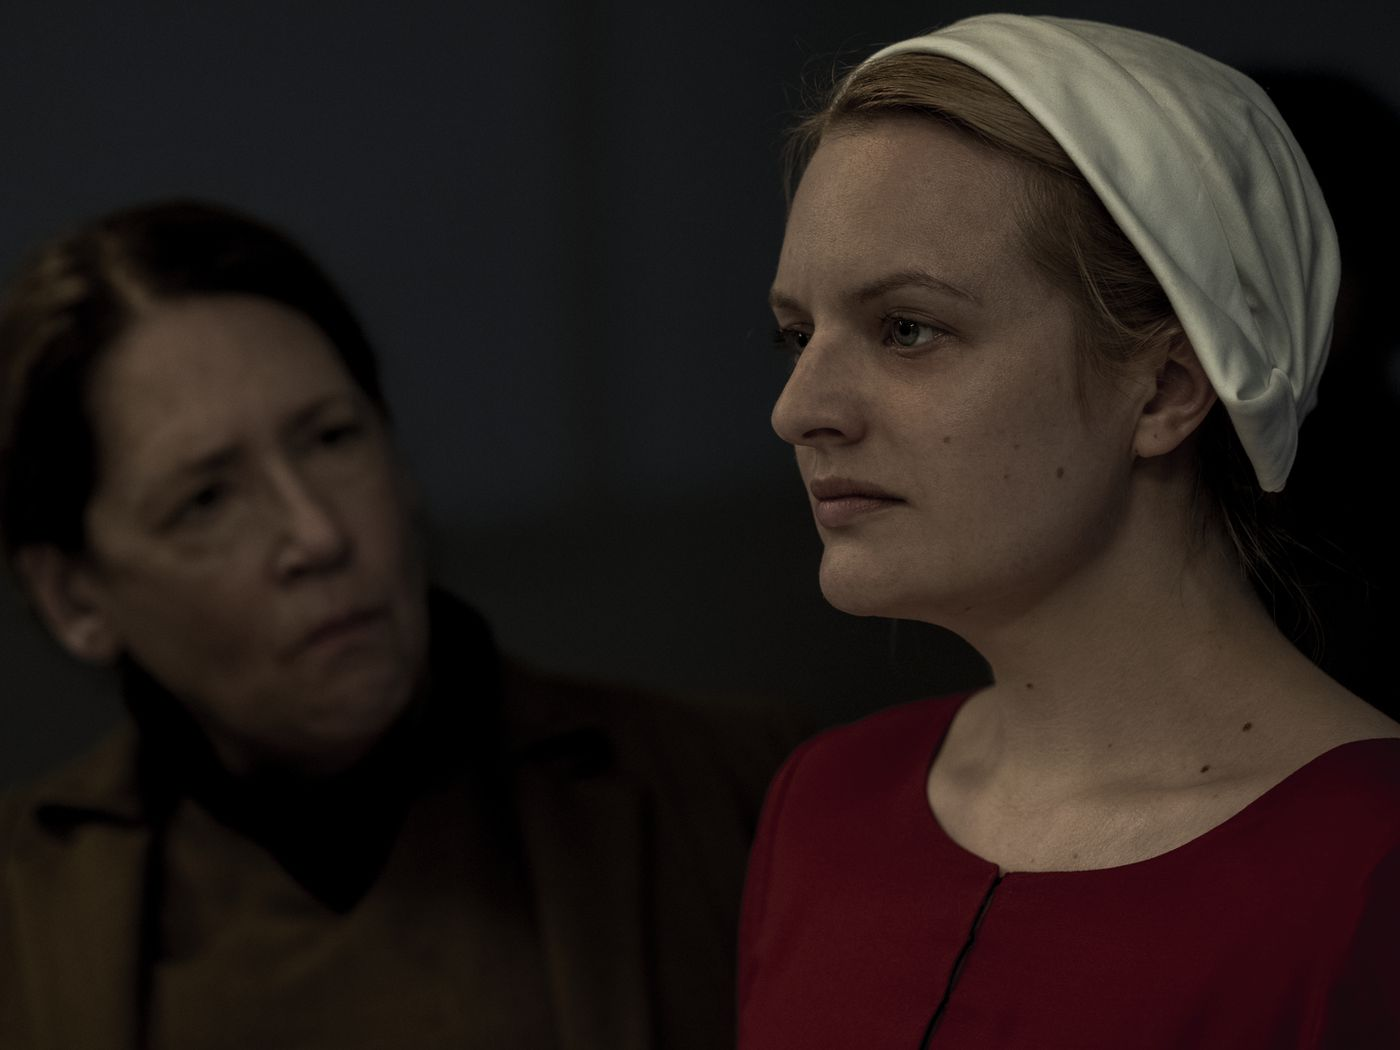 The Handmaid's Tale season 2: news and episode reviews - Vox